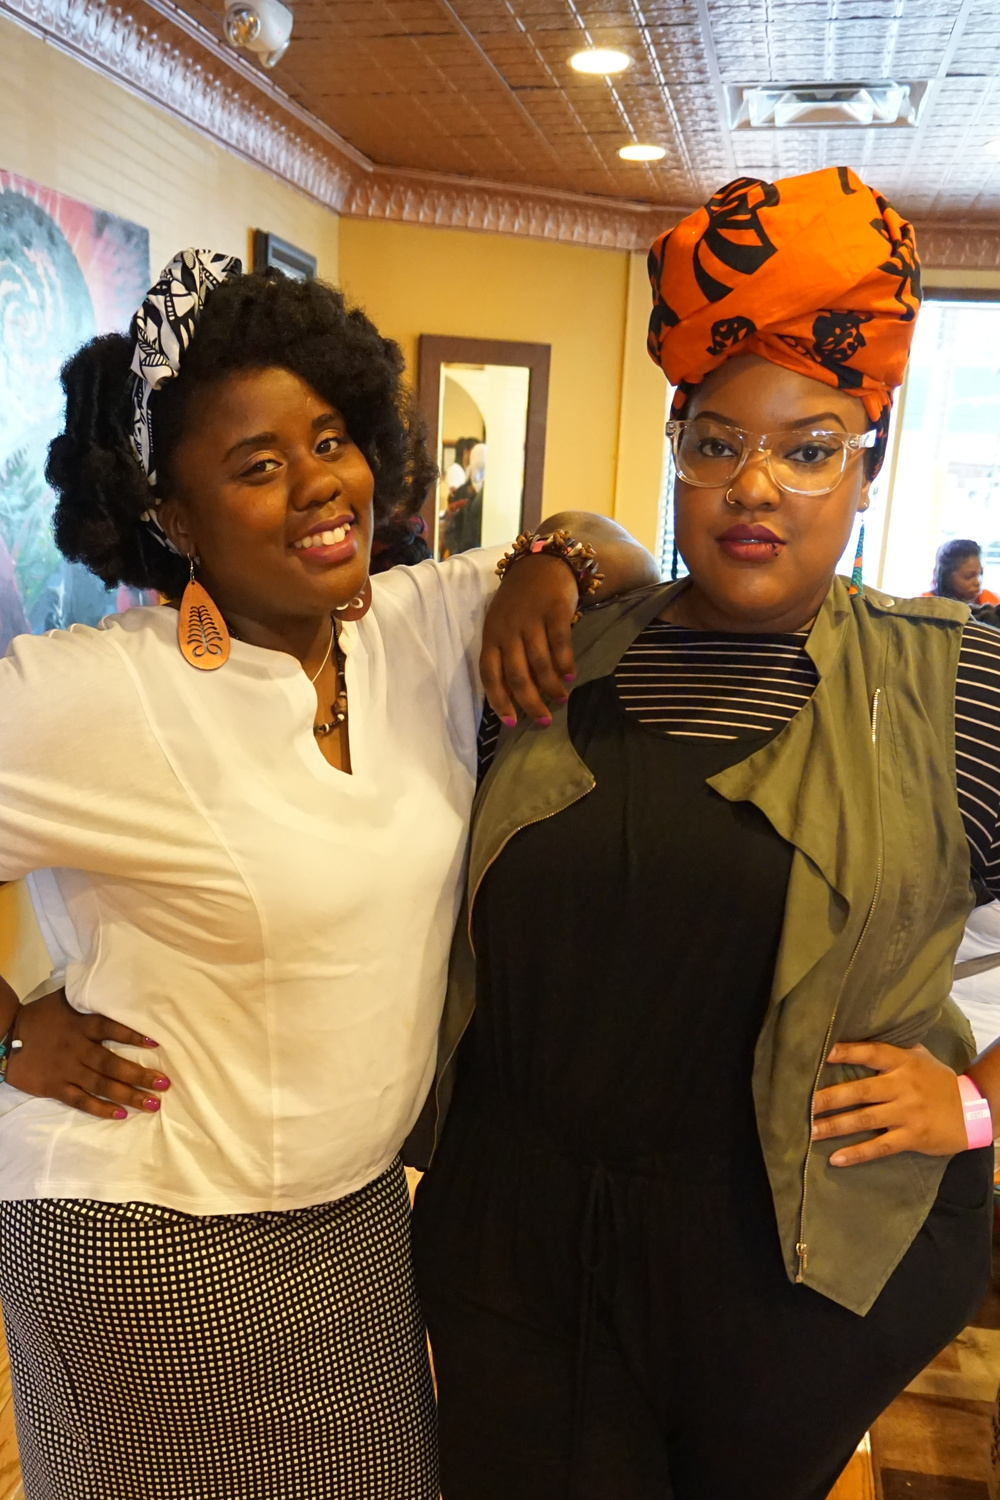 Posing with Naturalista/Blogger:  Naturally Act